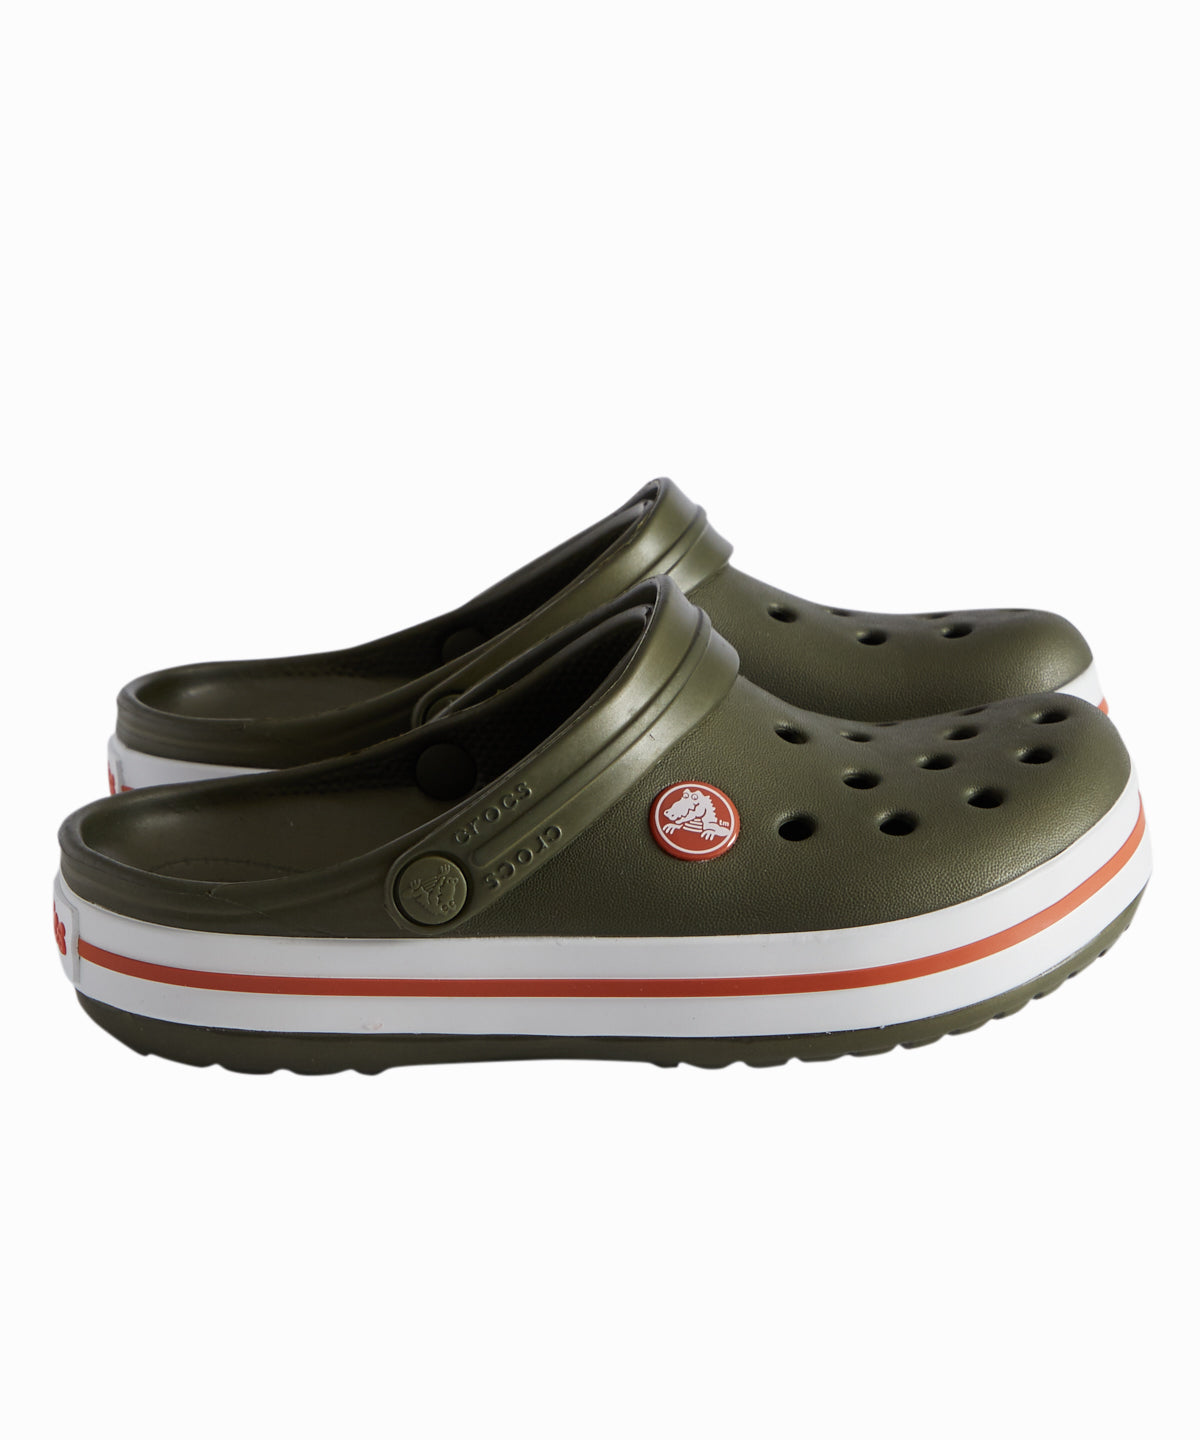 Crocs Surplus Clog